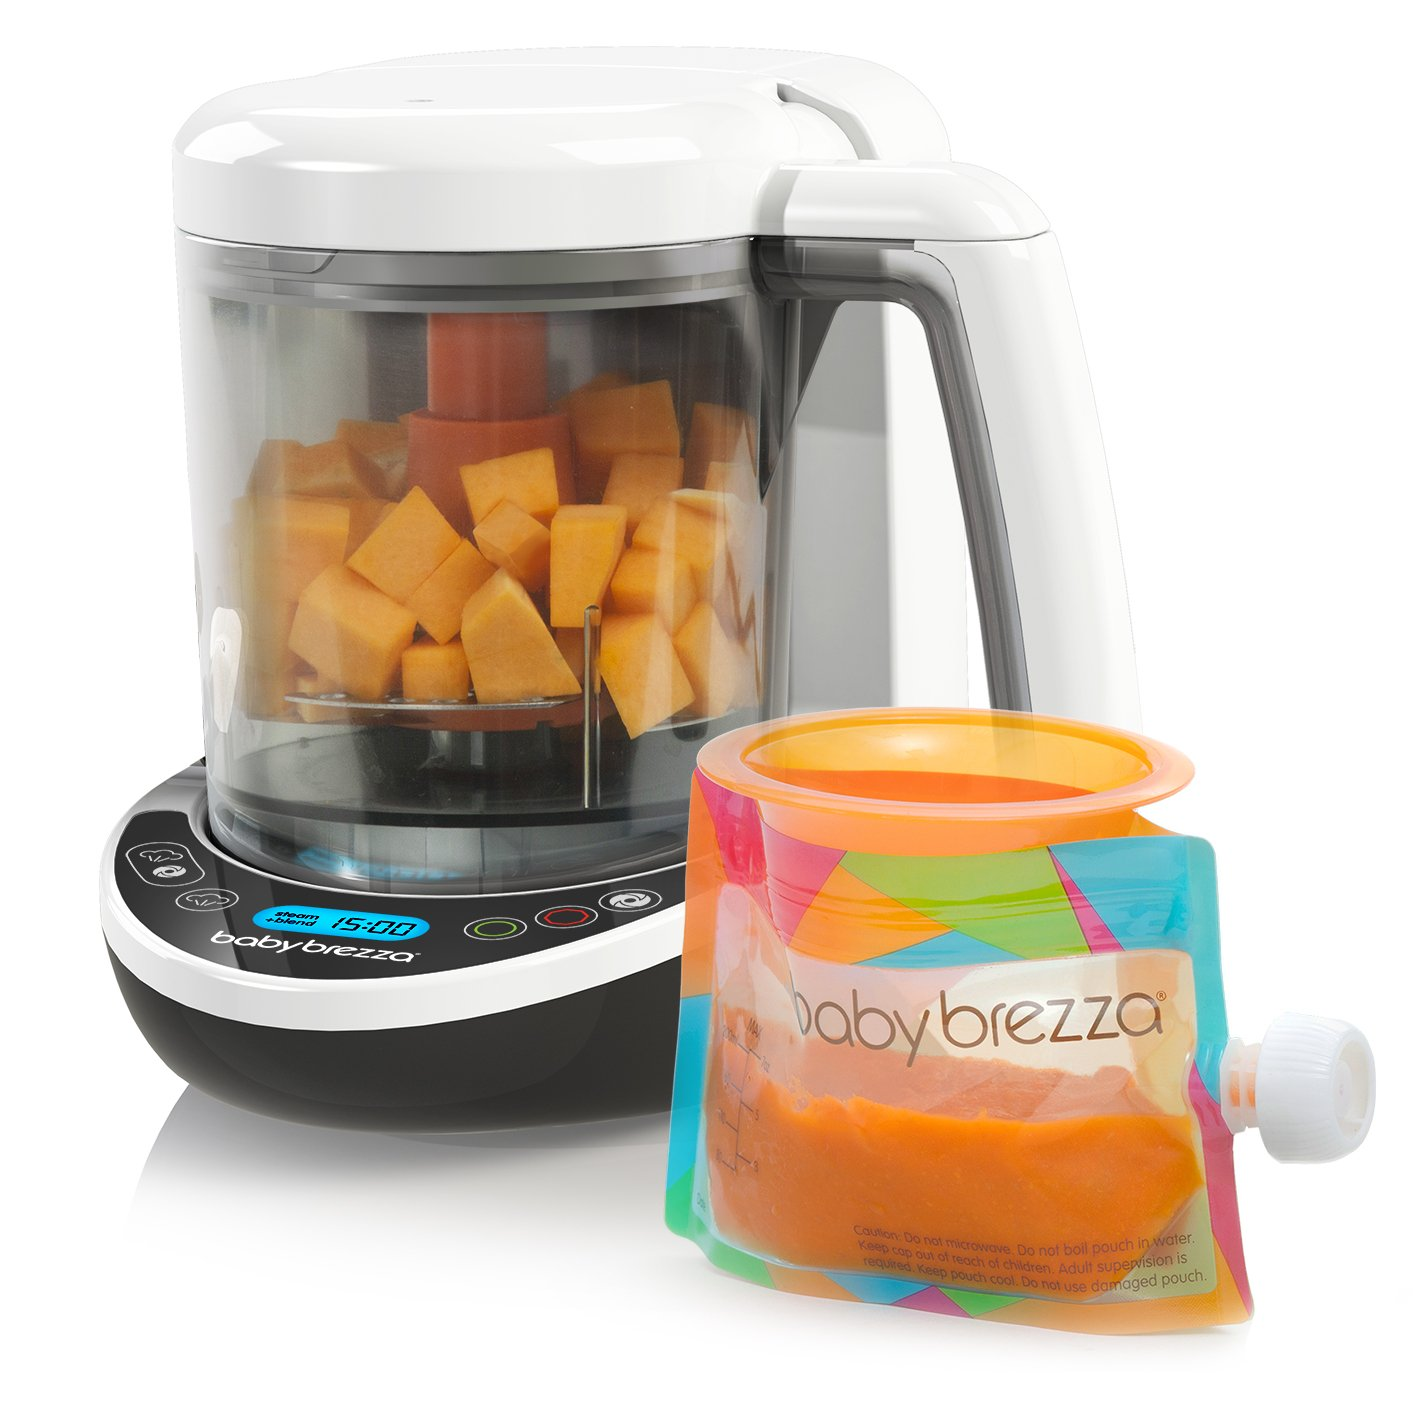 Buy Baby Brezza Small Baby Food Maker Set – Cooker and Blender in One to  Steam and Puree Baby Food for Pouches - Make Organic Food for Infants and  Toddlers - Includes